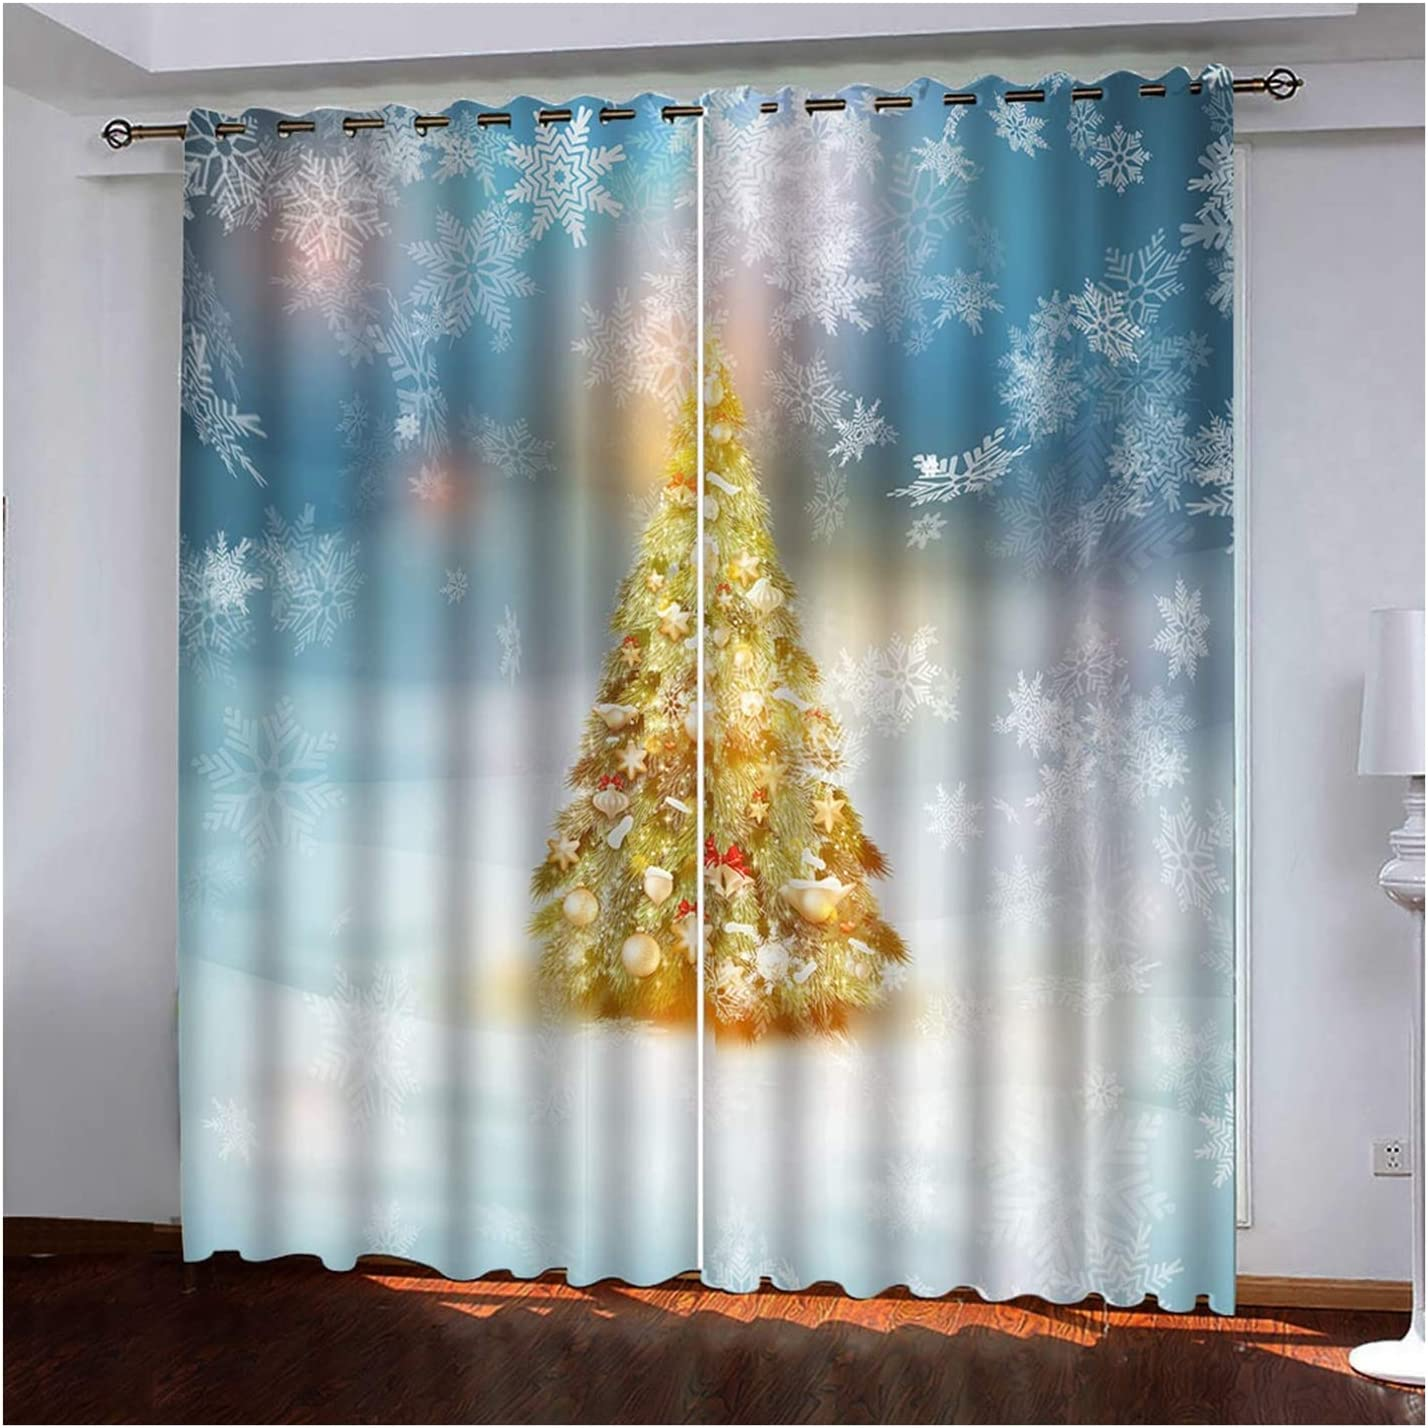 Daesar Christmas Curtain In a popularity for unisex Living Panels Room Set of